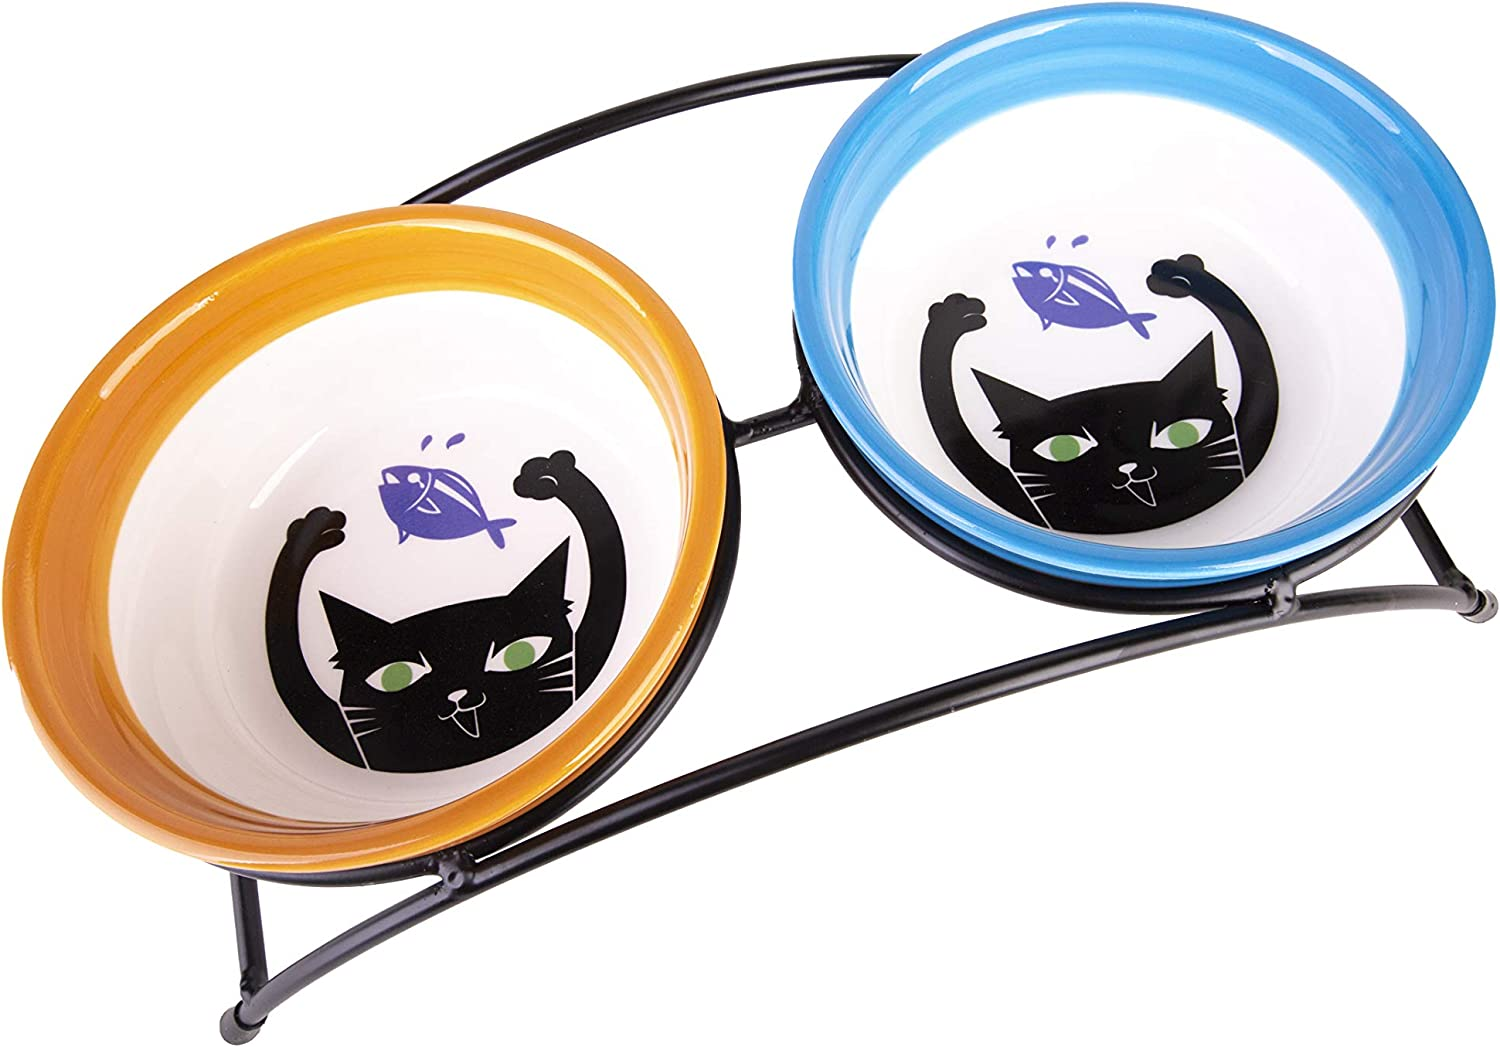 MushroomCat Pet Personalized Cute Feeder SEAL limited product Dog Ceramic Double Cat Now free shipping